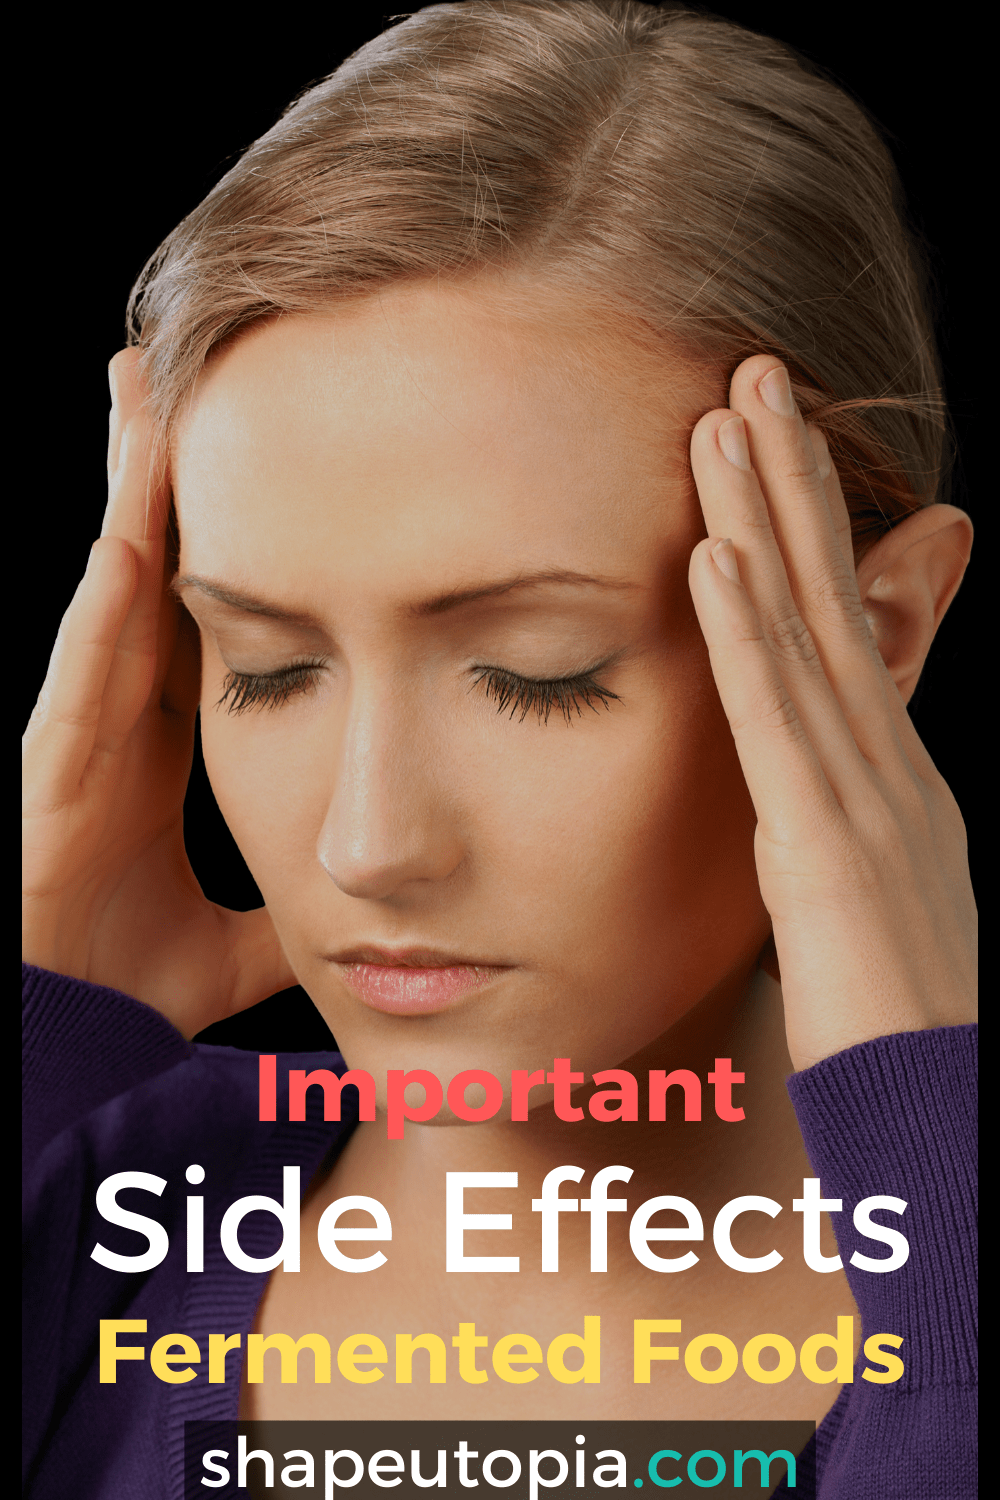 Important Side Effects of Fermented Foods